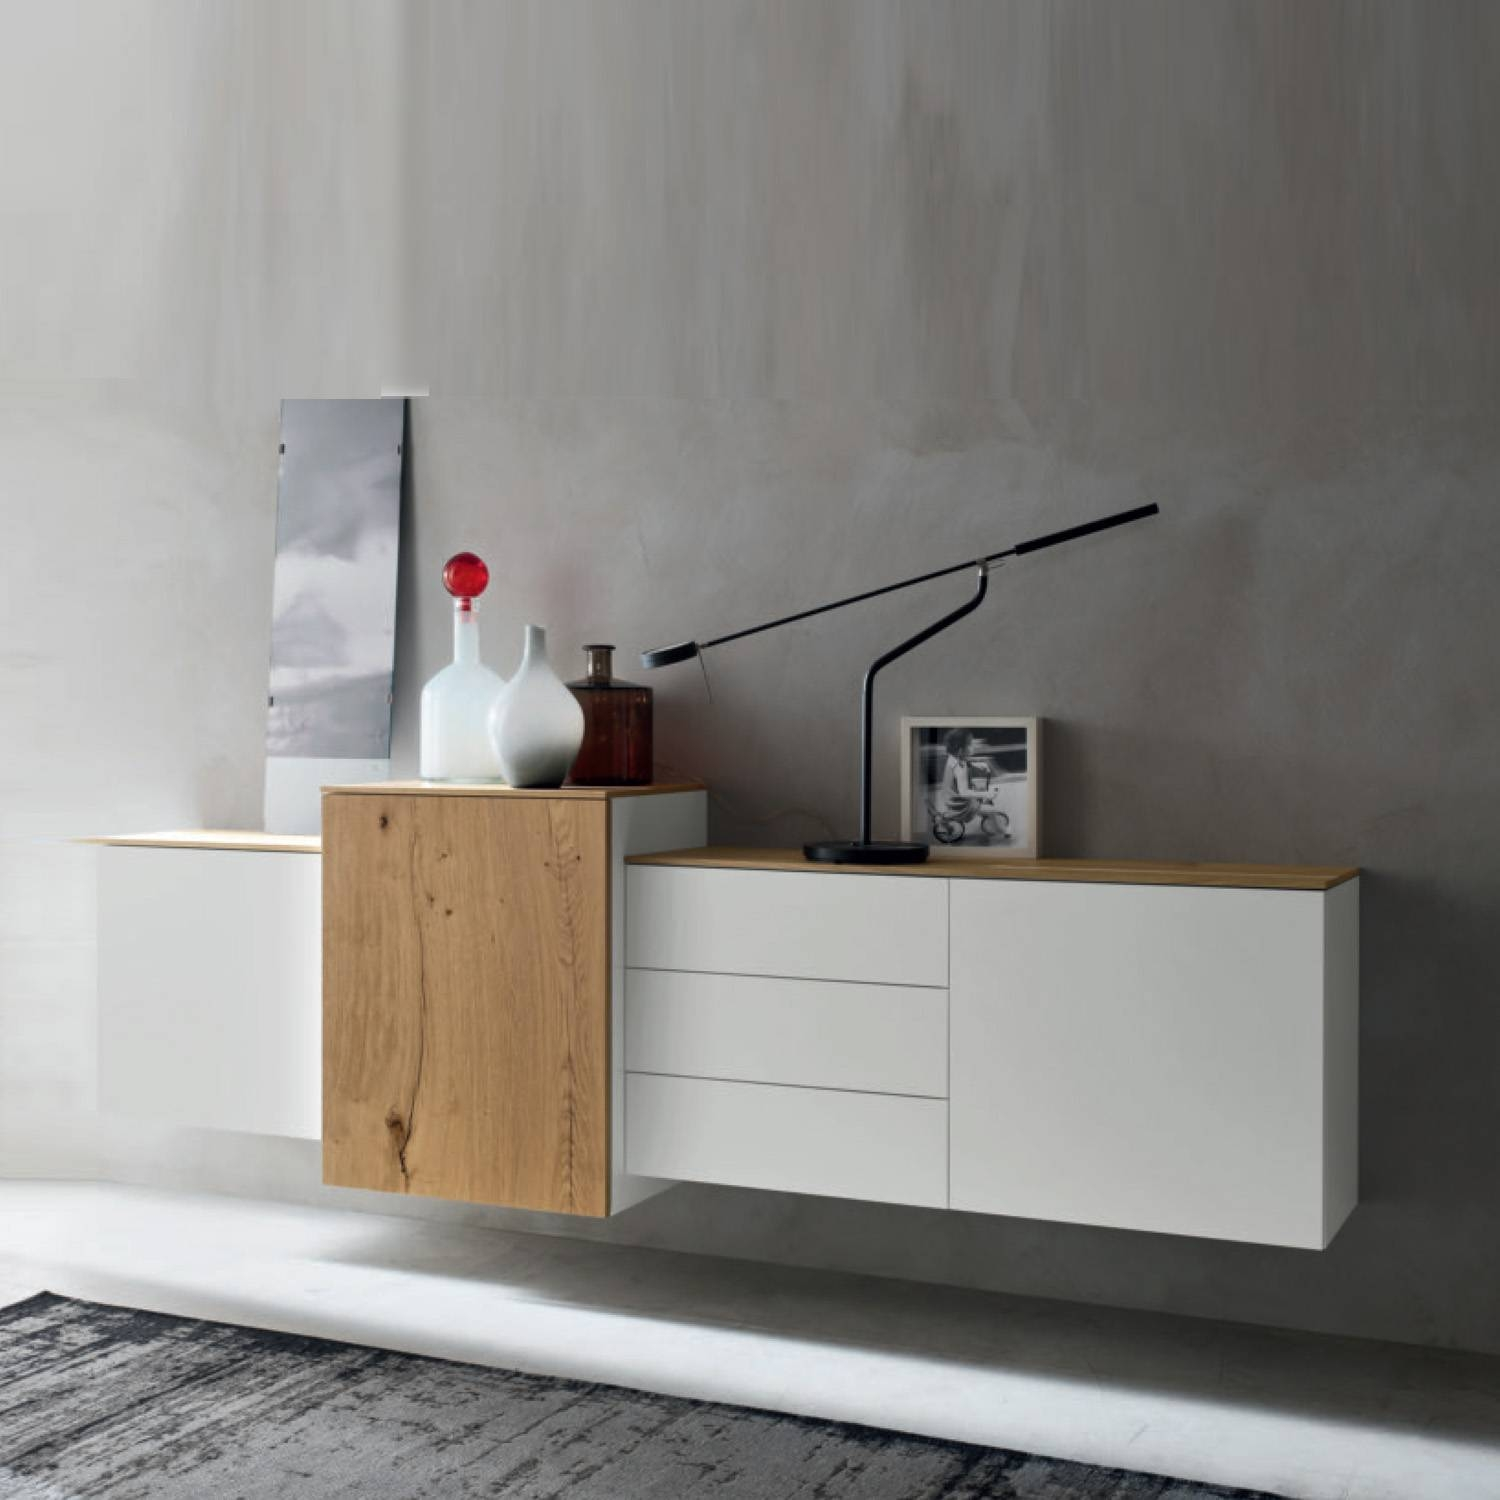 Modern Contemporary Sideboards, Storage Units My Italian Living Ltd Regarding Contemporary Sideboards (#10 of 20)